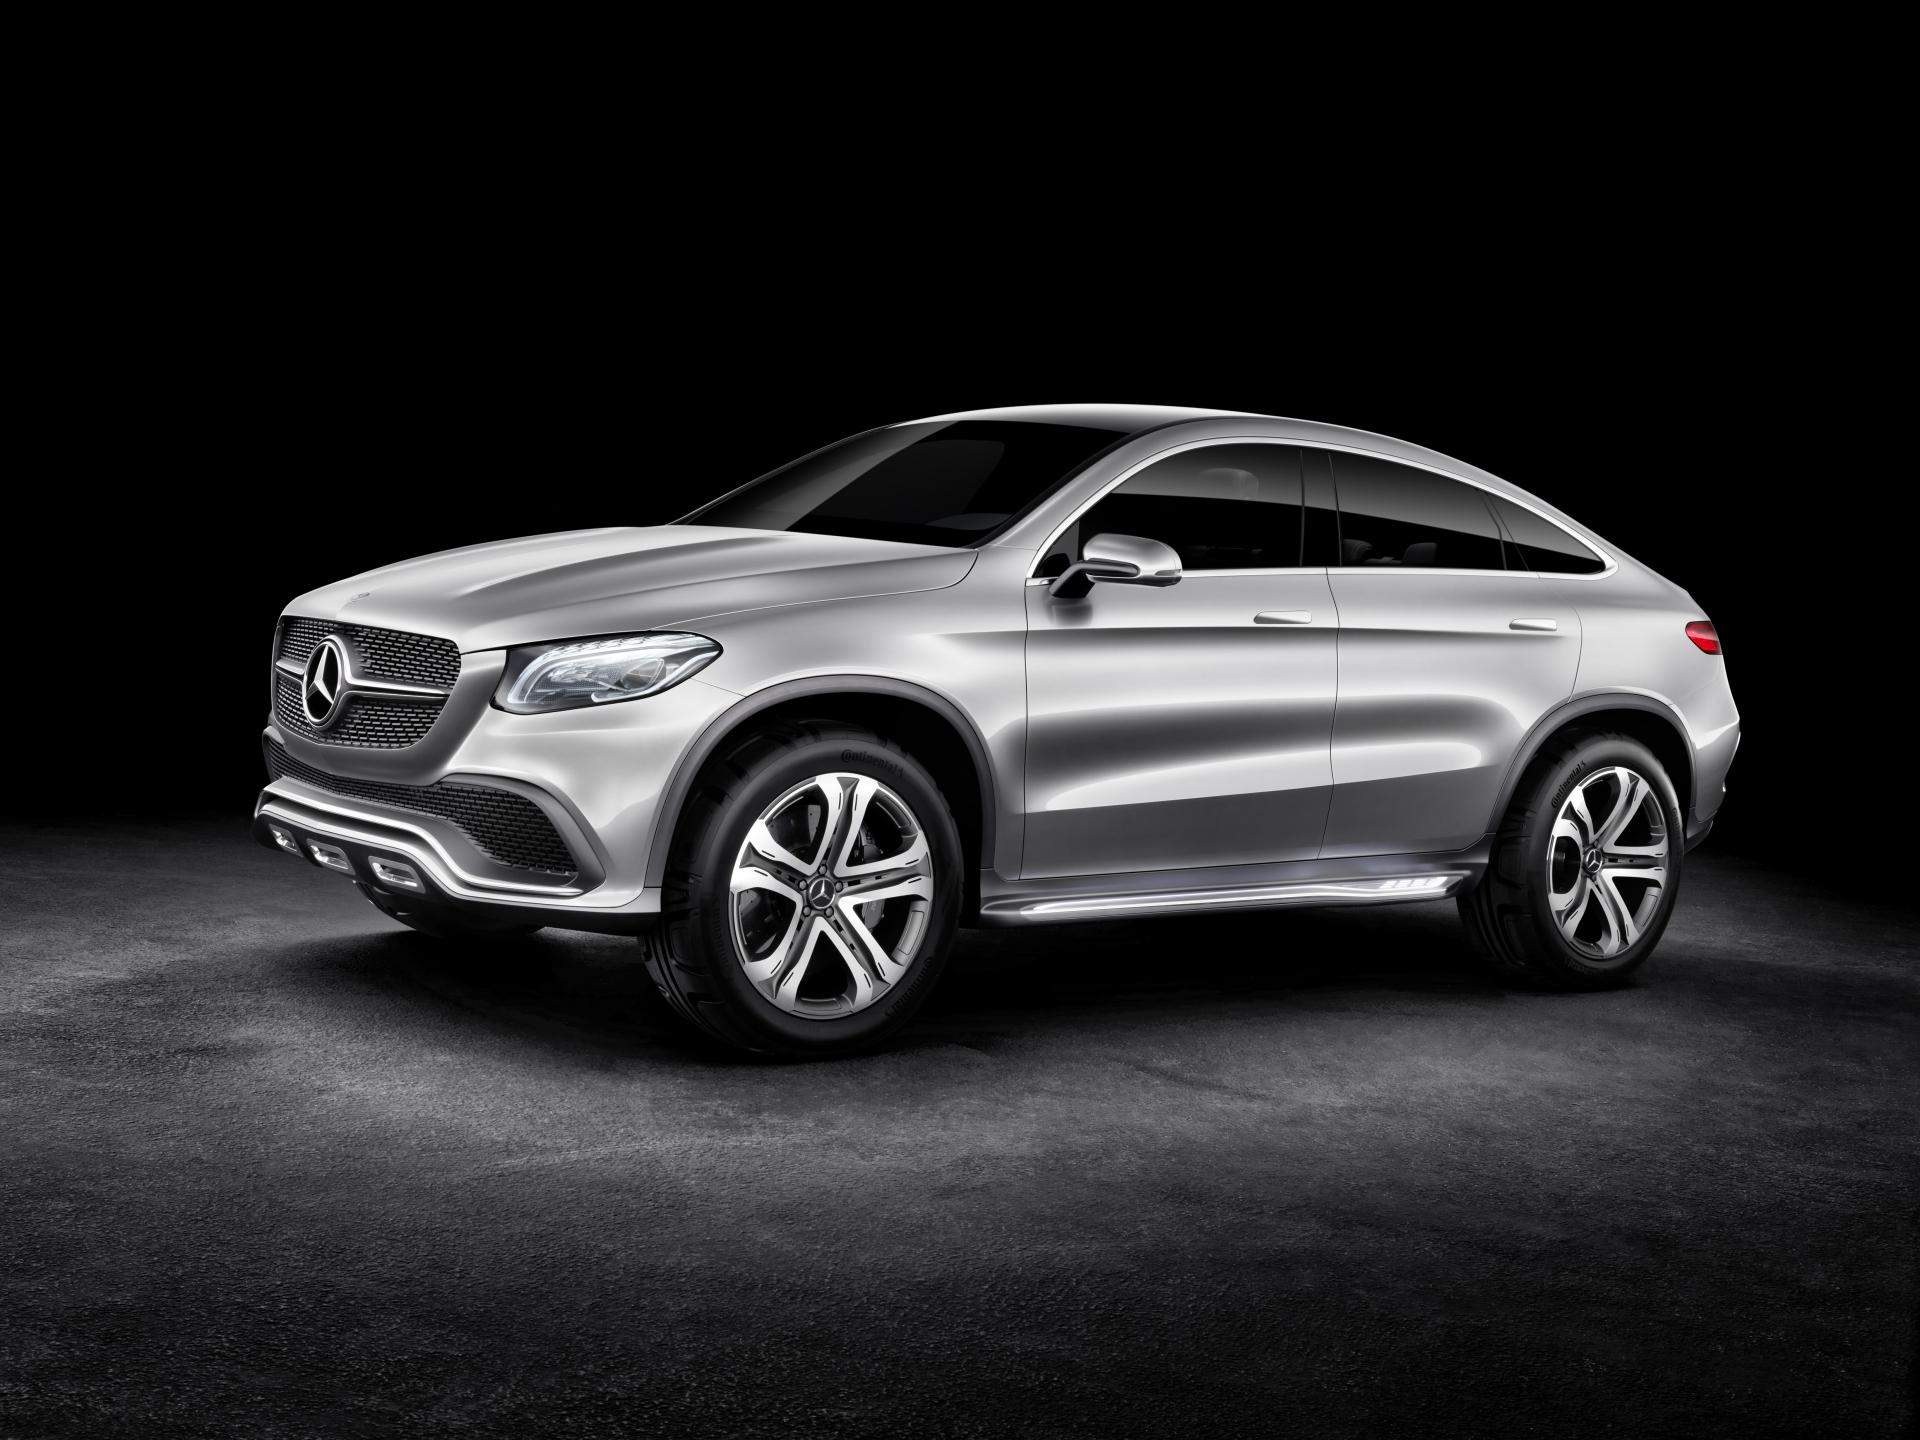 2014 Mercedesbenz Concept Coupe Suv News And Information Research And Pricing